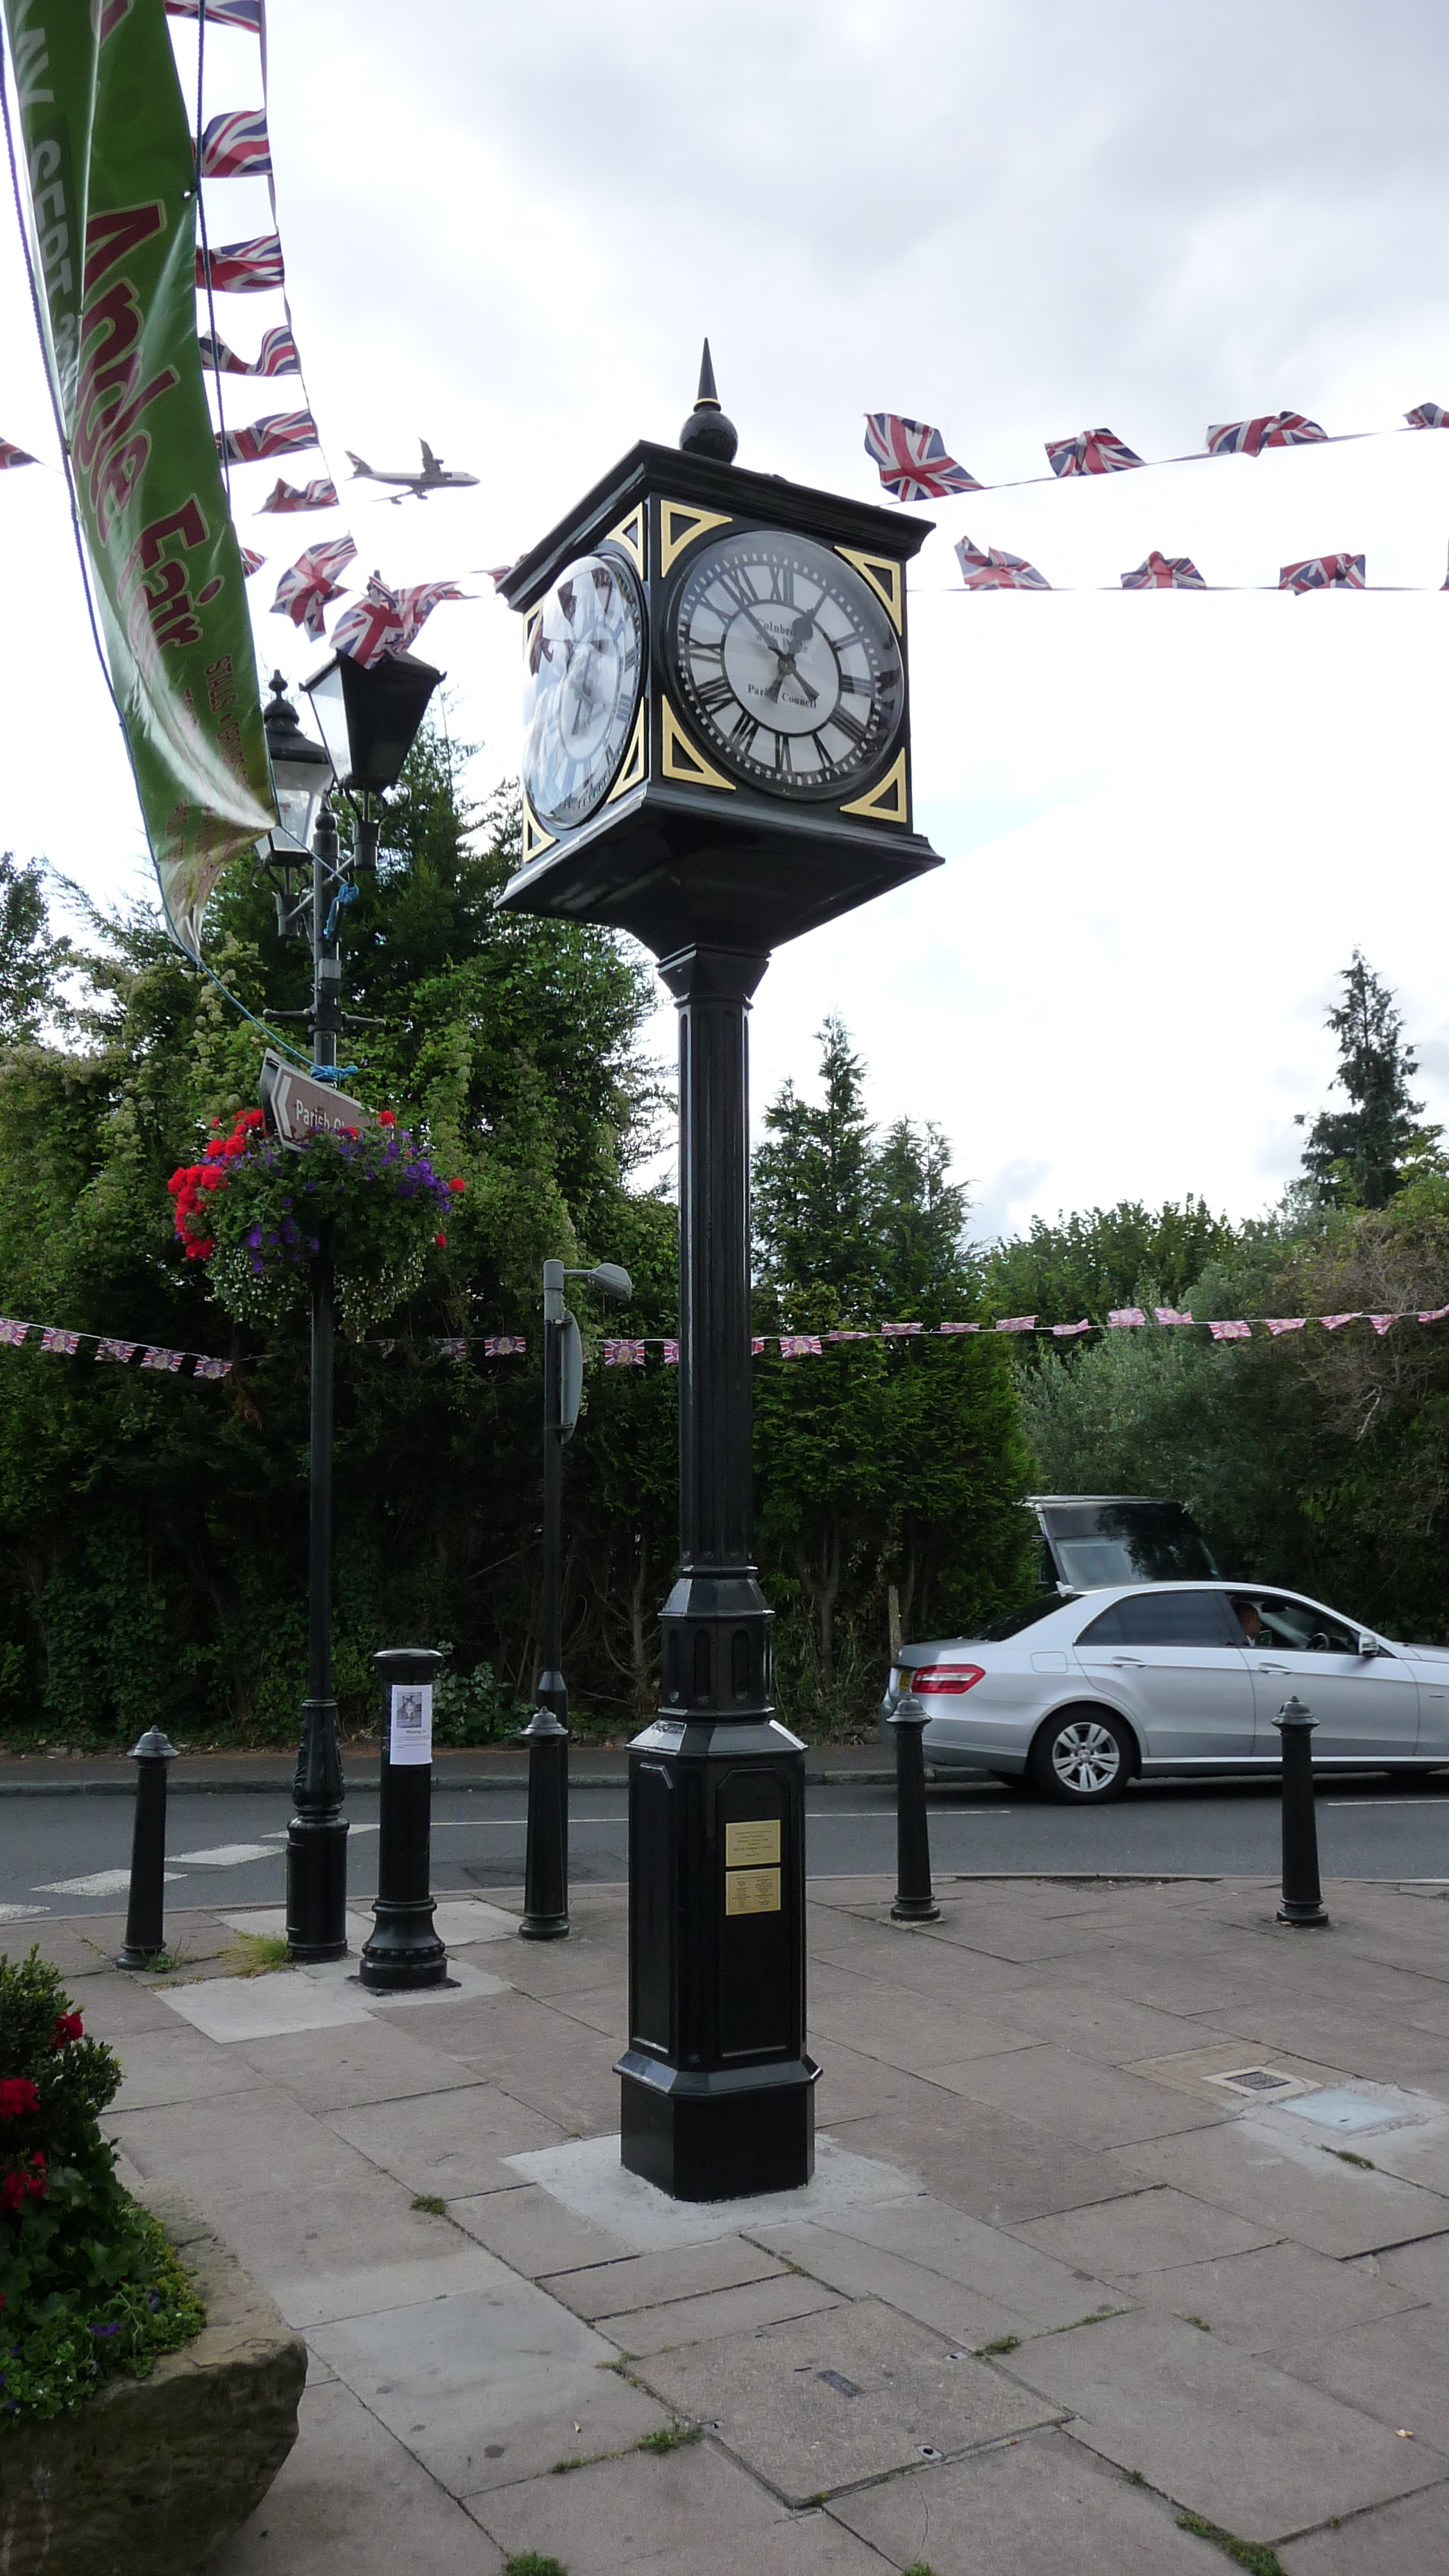 Civic pillar clock with four dials